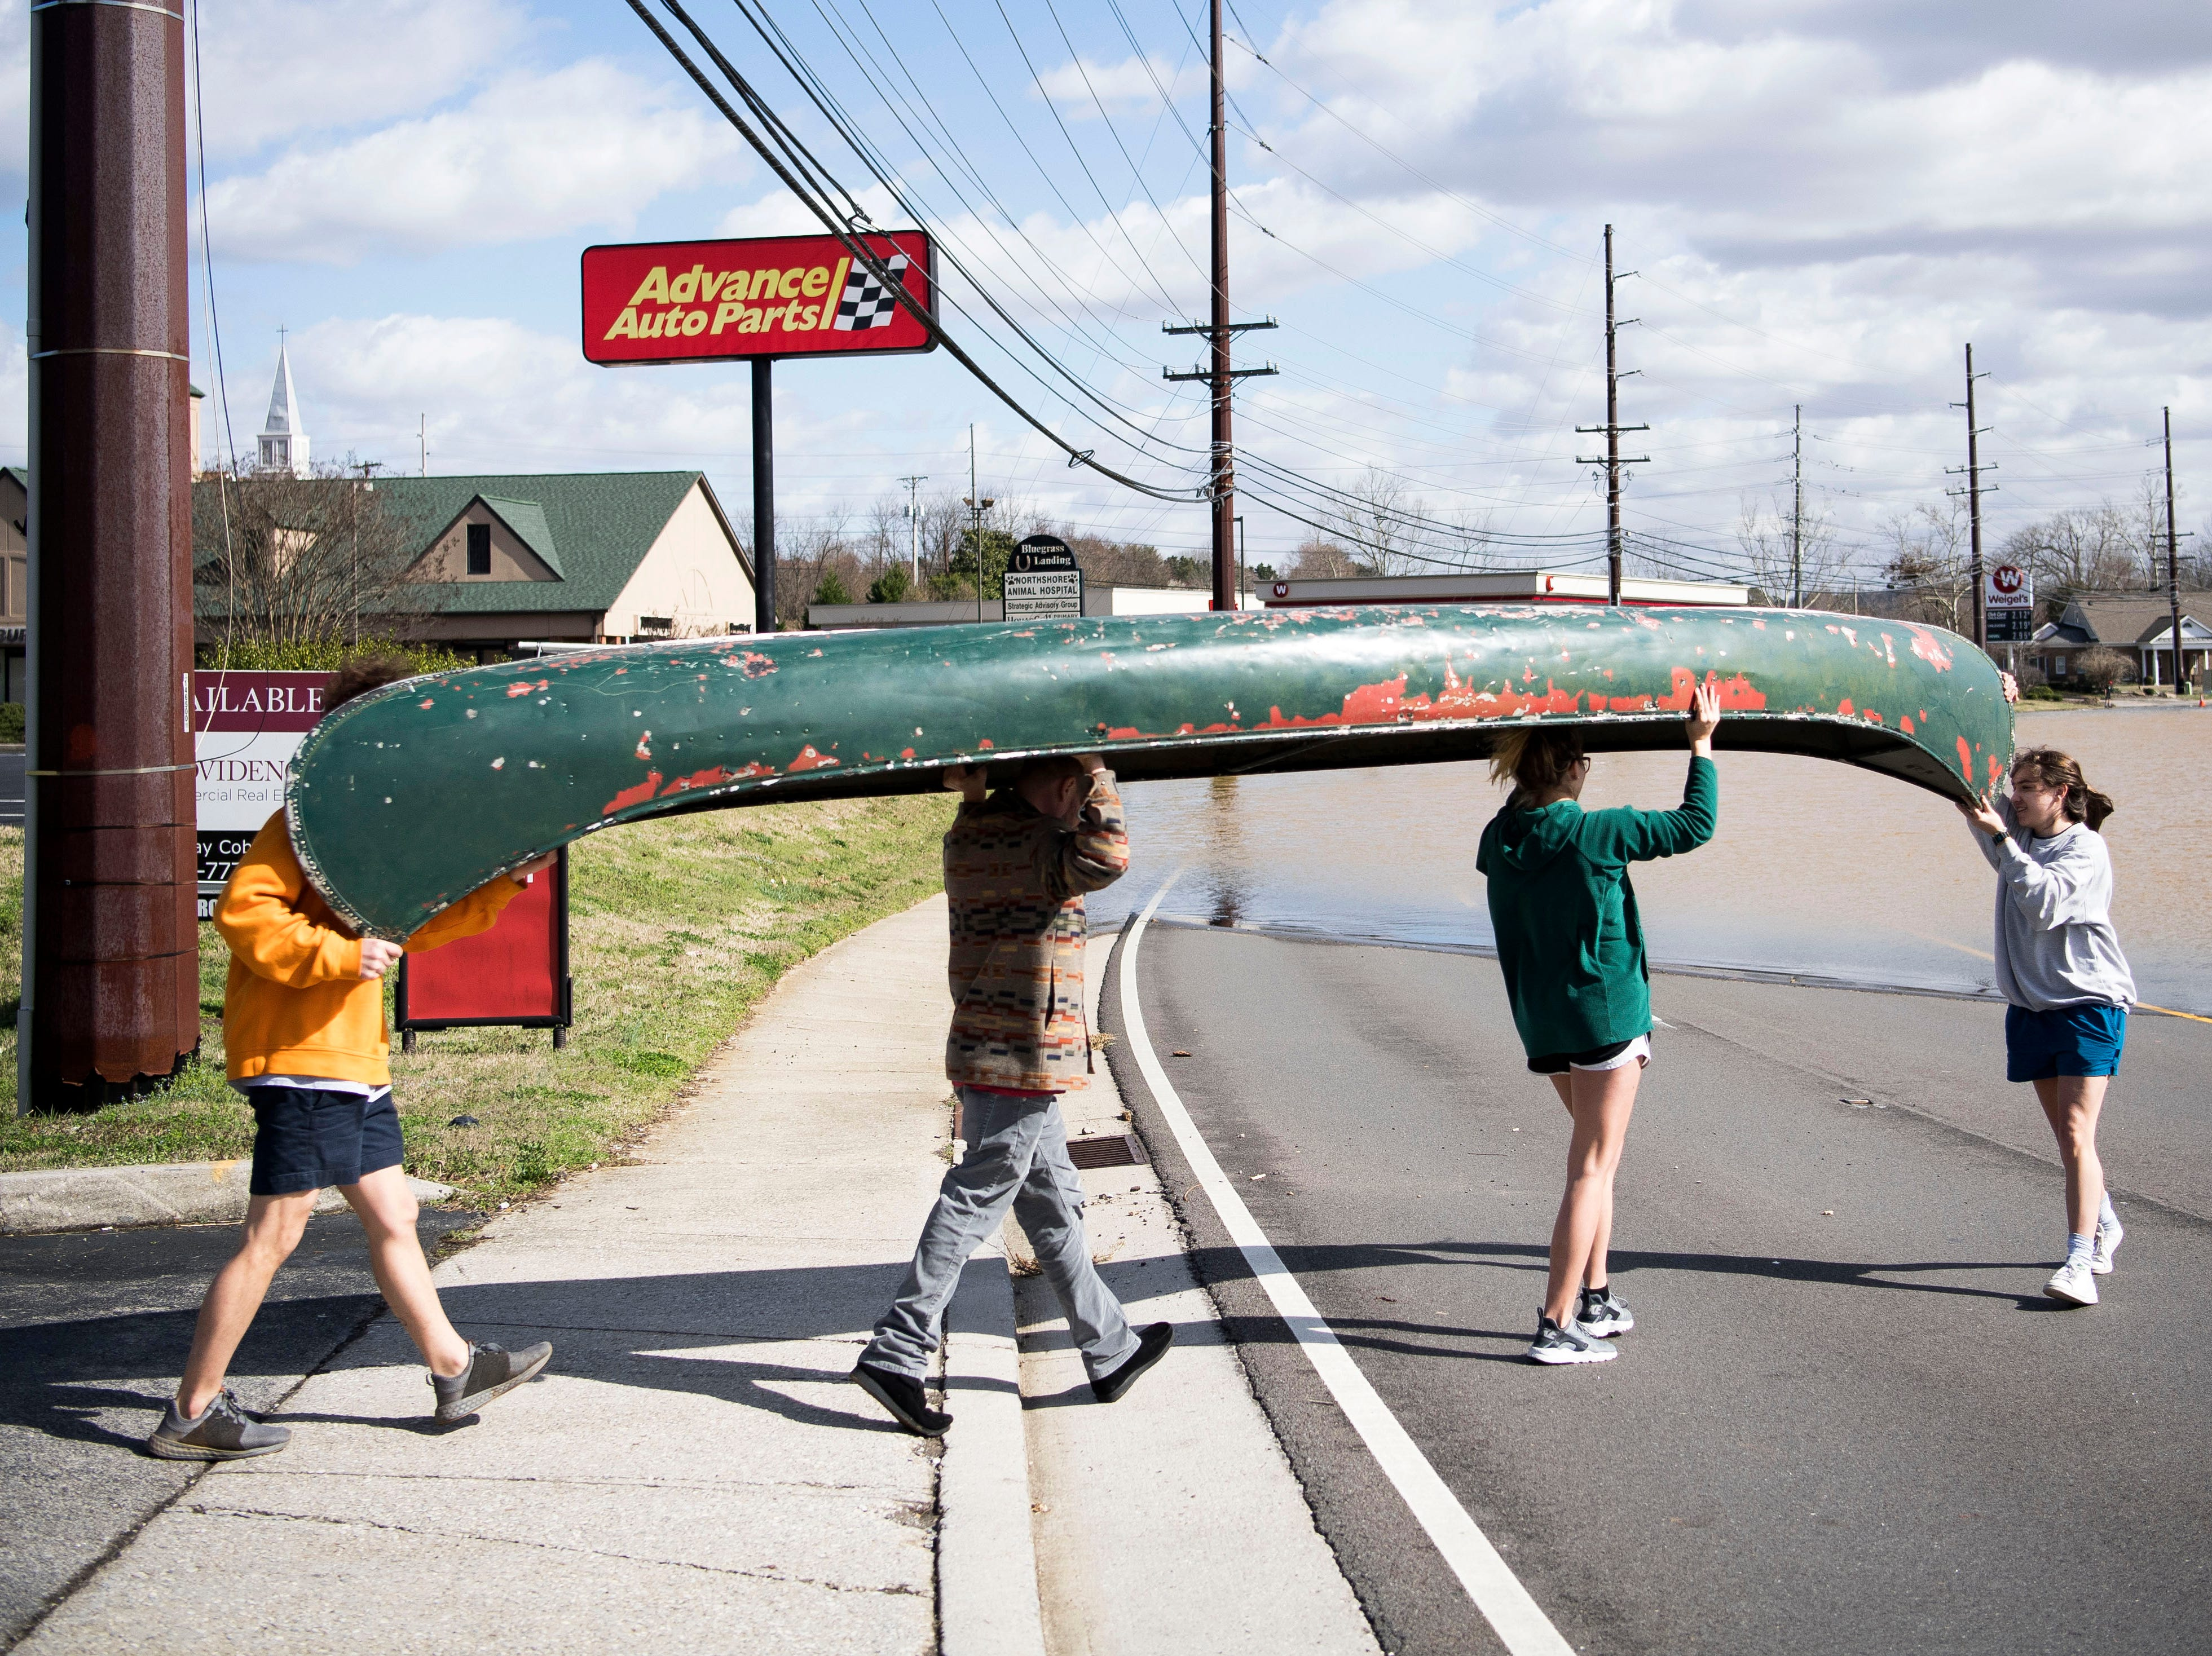 At right Julia Bryant, 18, of Knoxville, leads friends in helping her put a canoe into flood waters on South Northshore Drive in Southwest Knox County Sunday, Feb. 24, 2019.  Bryant canoed to her home off Lantair Farm Lane,  which was surrounded by flood waters.  Bryant canoed approximately three-quarters of a mile.